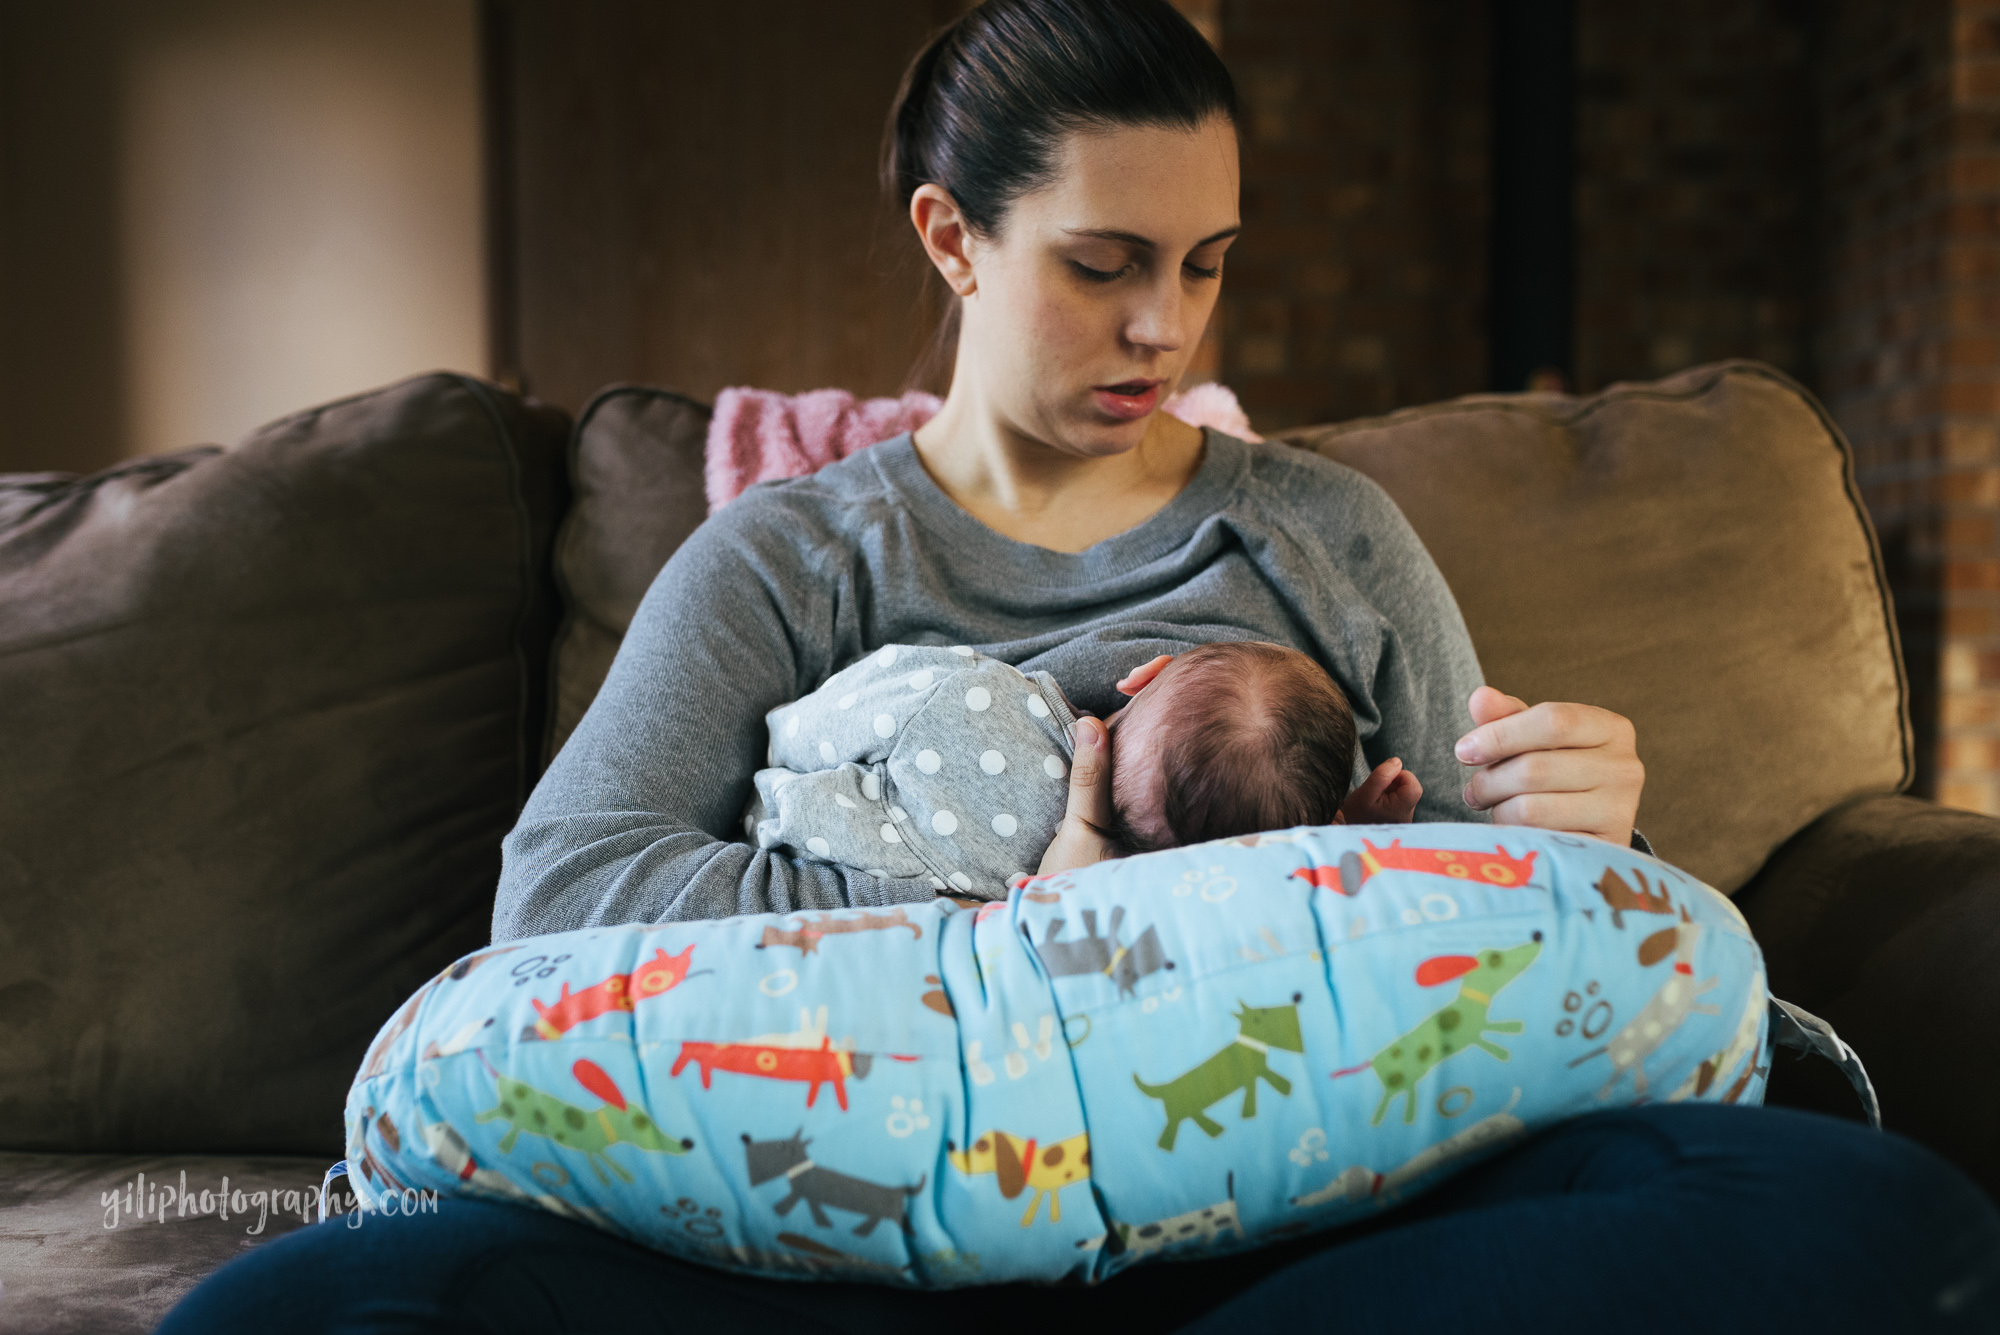 seattle mom sitting on couch nursing newborn baby